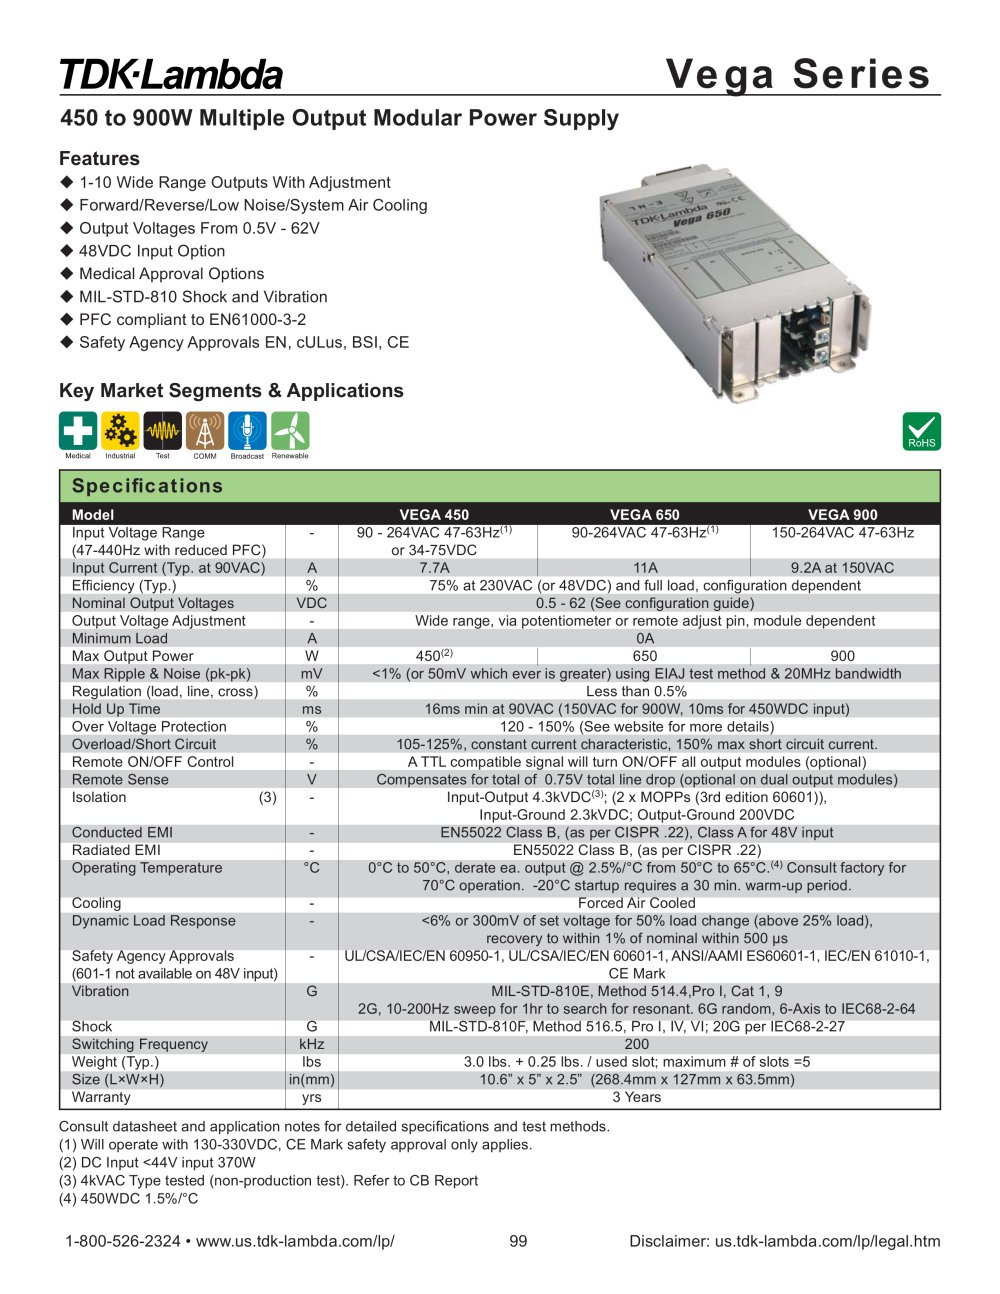 Vega Ac Dc Input Lambda Pdf Catalogs Technical Documentation Power Supply Built In Emi Filter With Overload Short Circuit 1 2 Pages